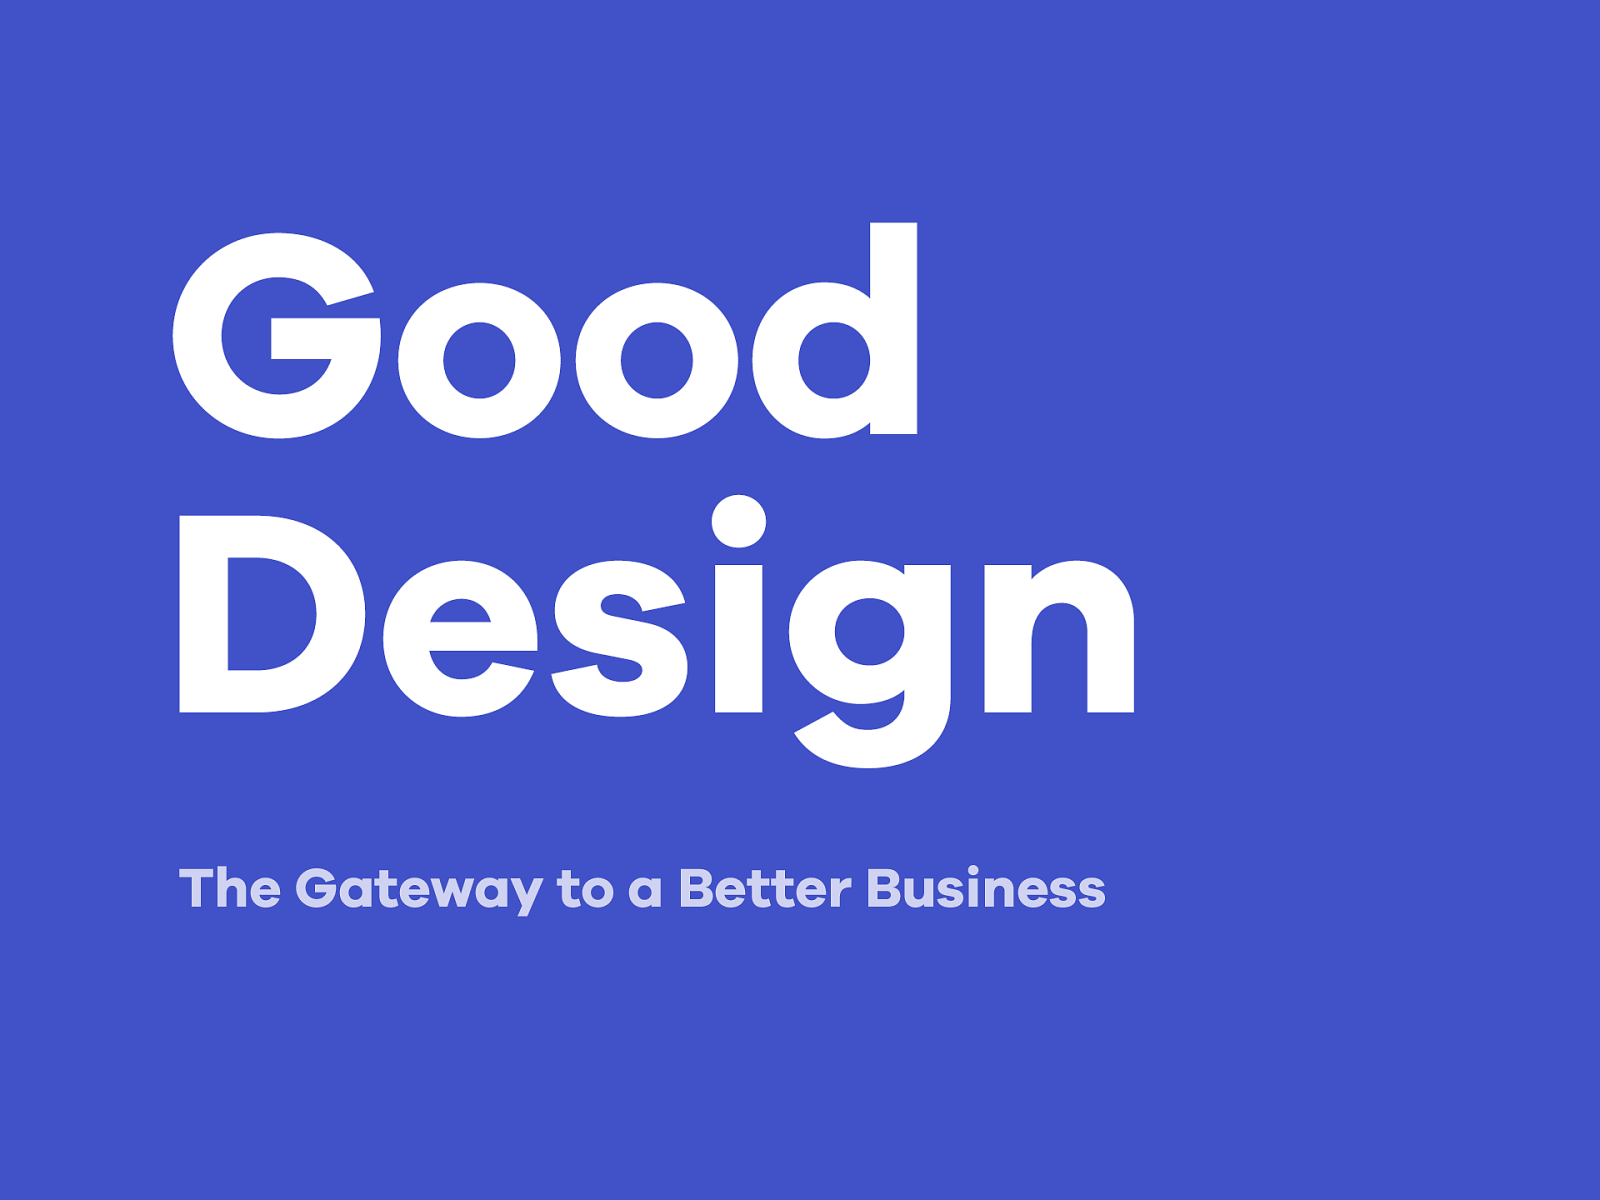 Good Design: The Gateway to a Better Business​